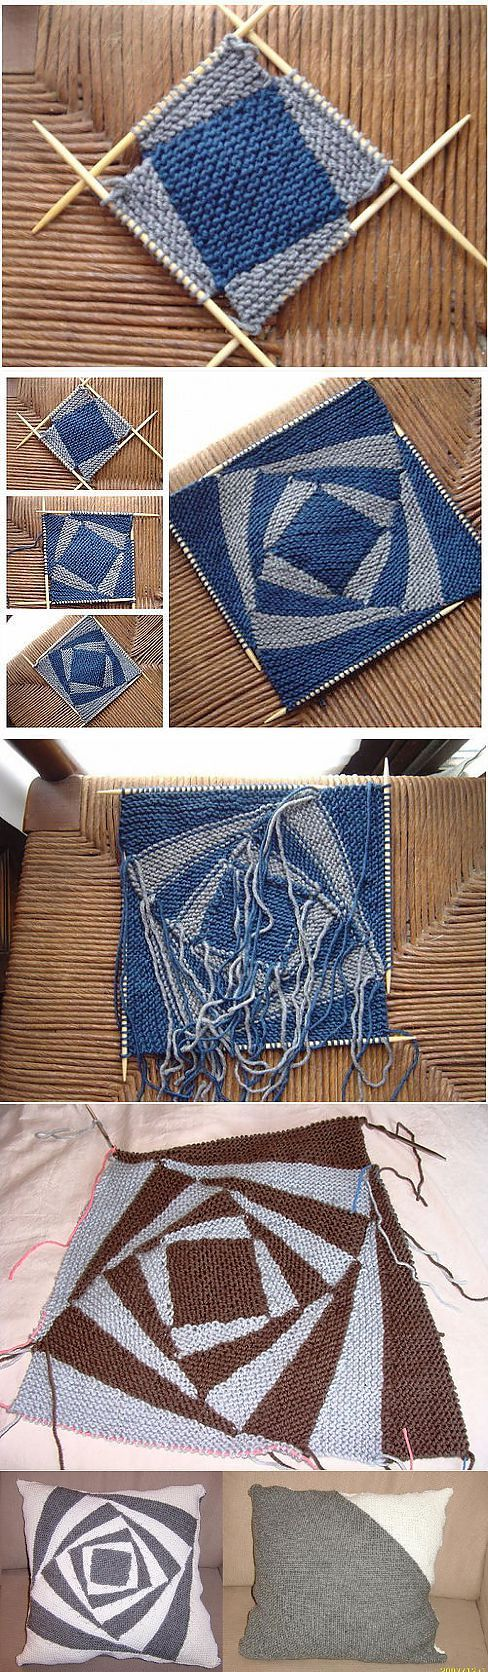 Looking for a knitting challenge? This really interesting technique is on a Russian site with no instructions, but lots of inspiration! You can get an idea of how to do this from the pictures. ❤️ KnittingGuru